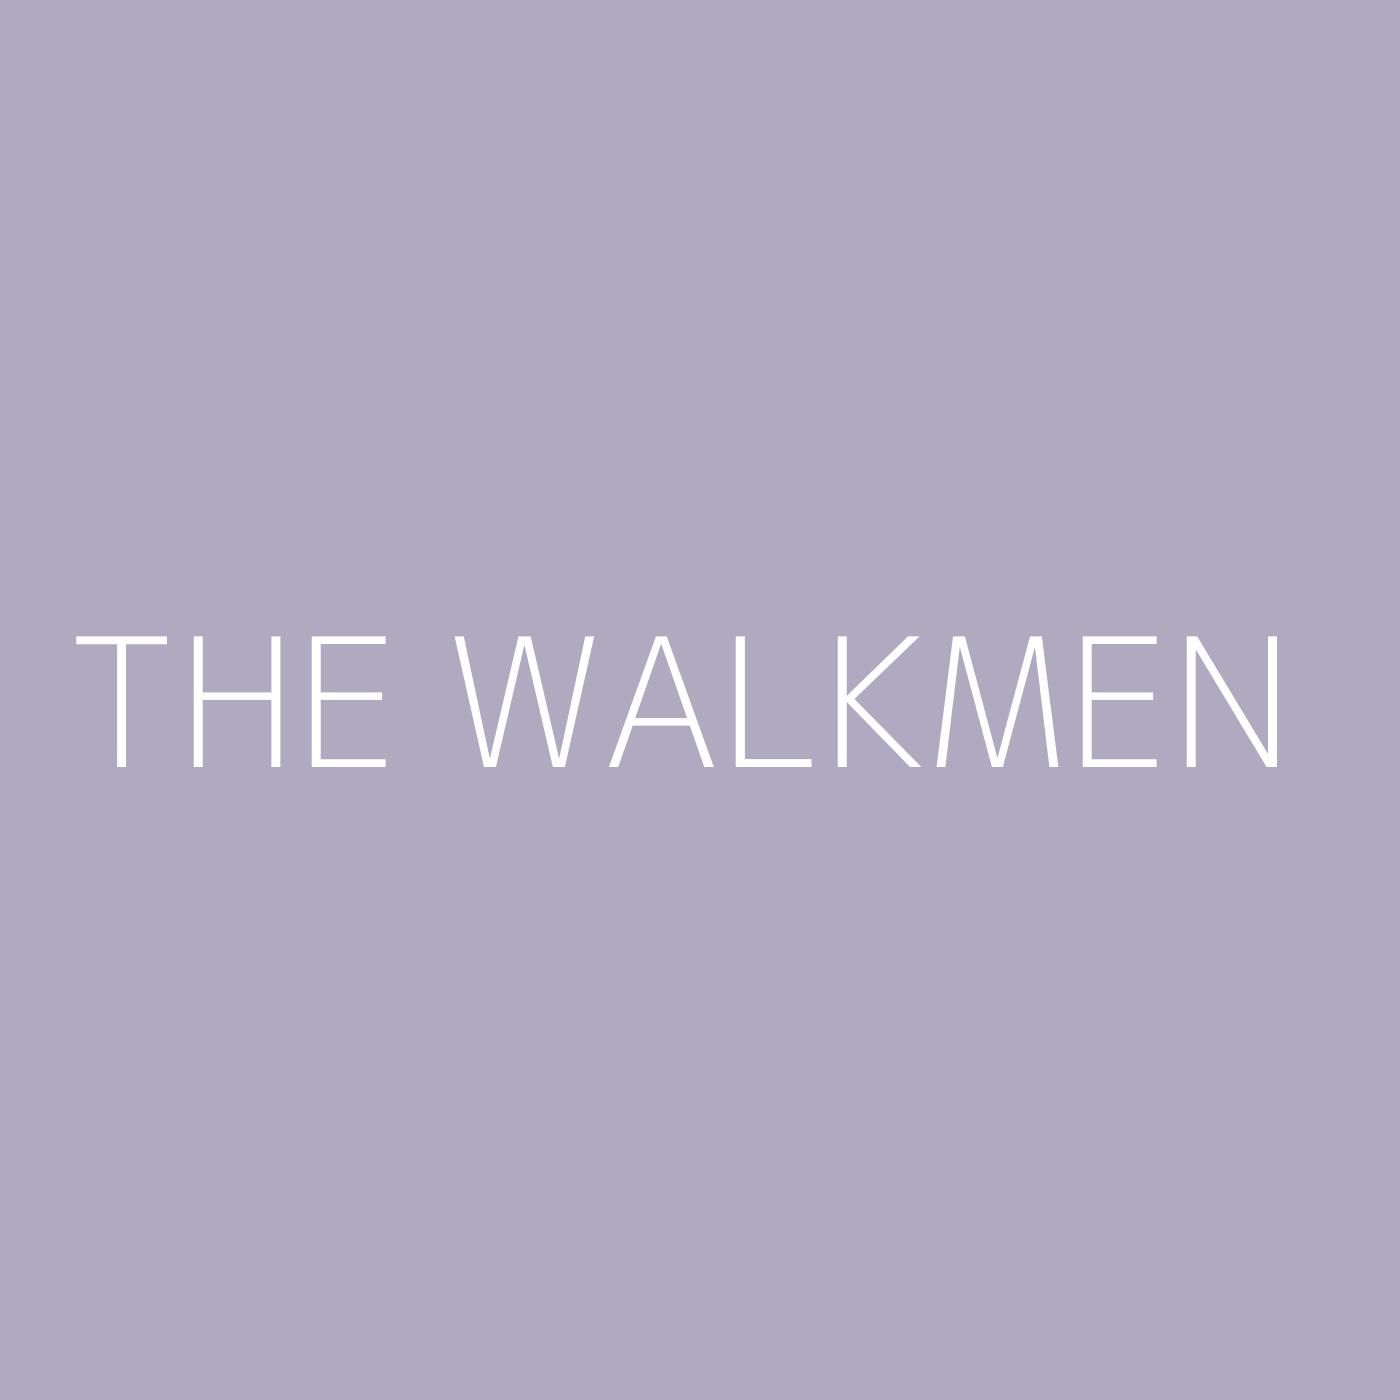 The Walkmen Playlist Artwork